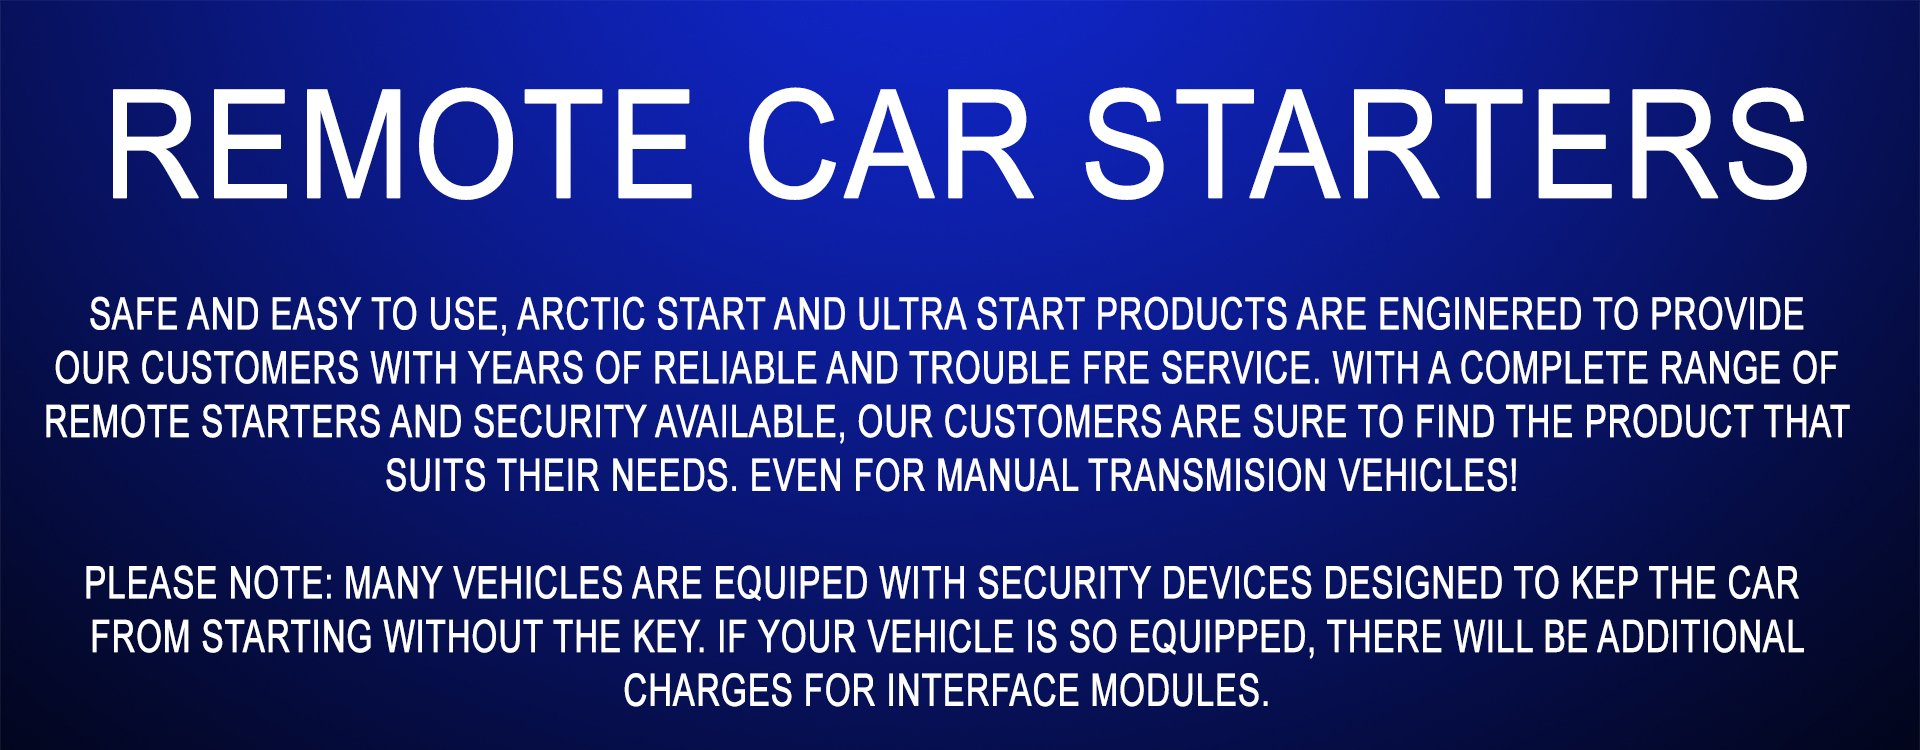 Remote Car Starters Auto Mobile Starter Kit 6 Benefits To Having An Arctic Start System Installed